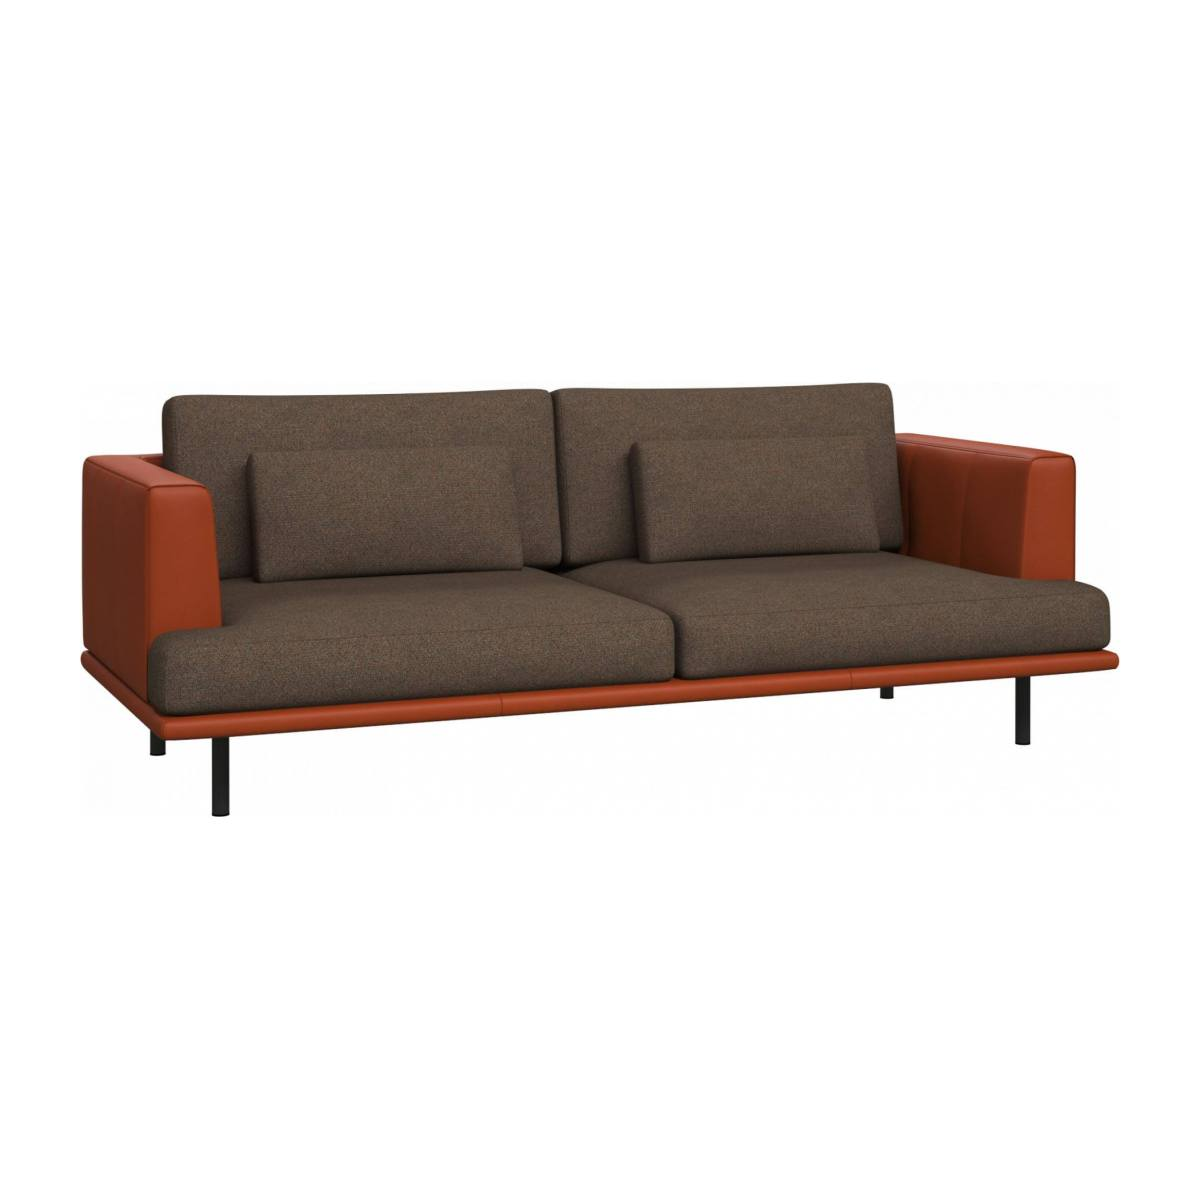 3 seater sofa in Lecce fabric, burned orange with base and armrests in brown leather n°3